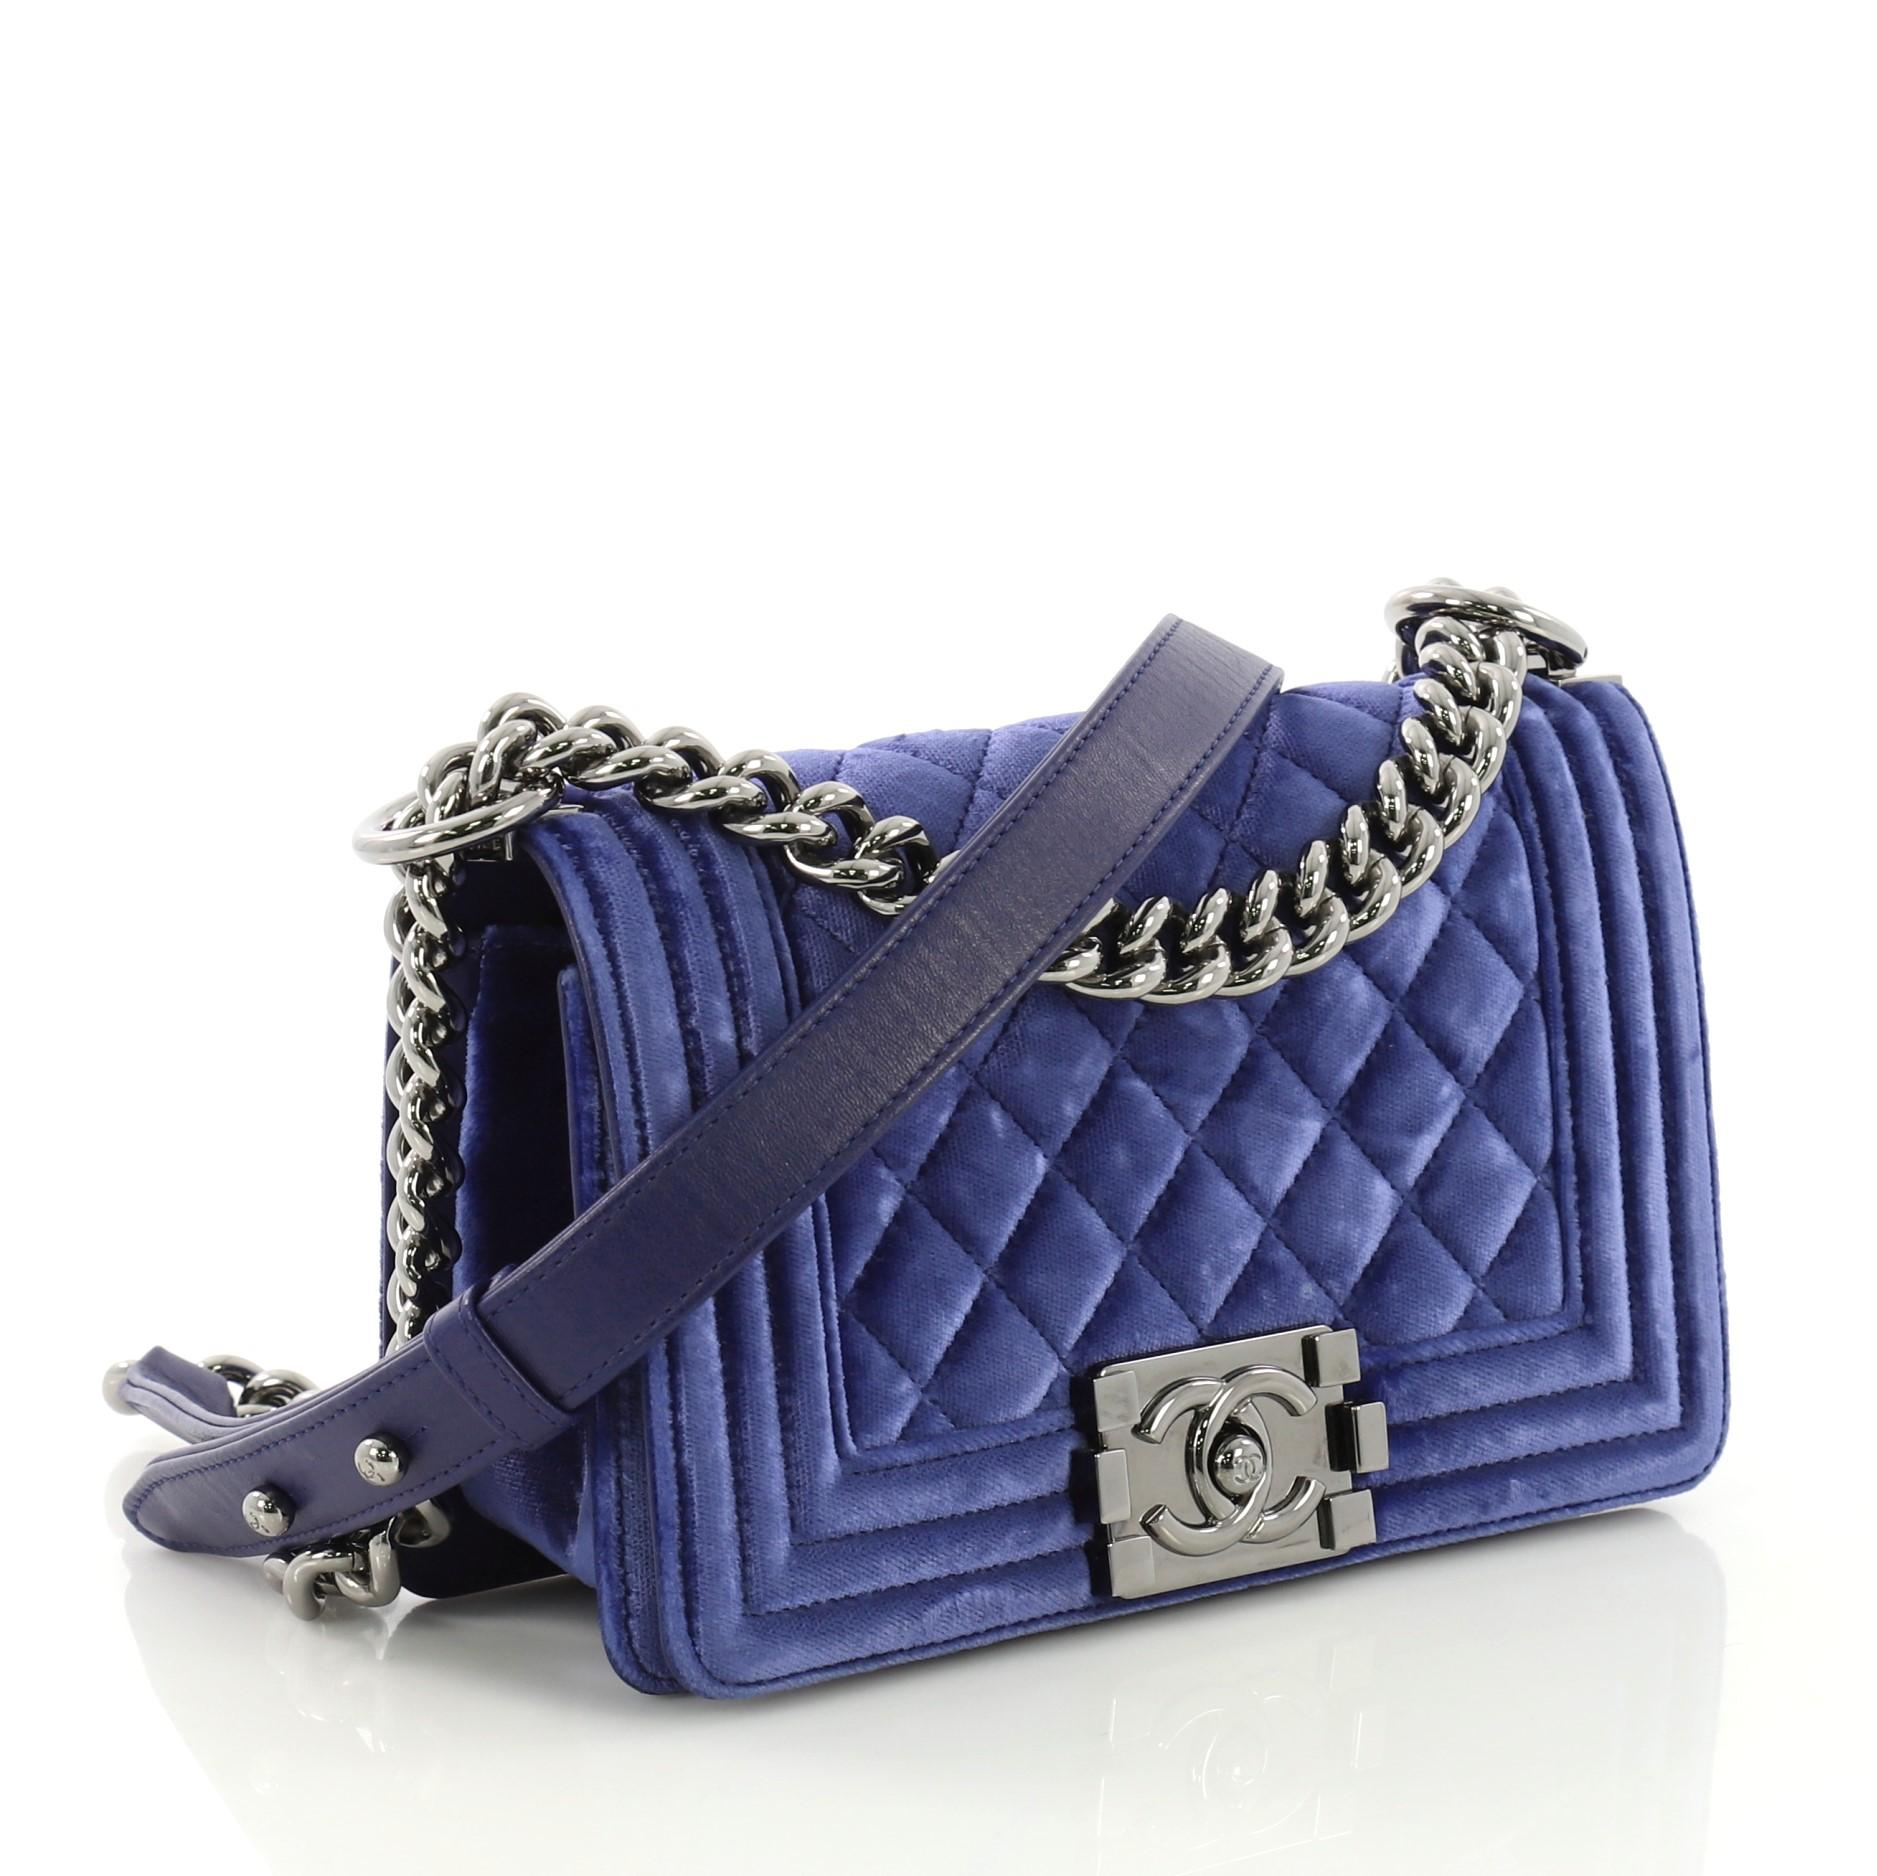 968c0ad26b2431 Chanel Boy Flap Bag Quilted Velvet Small at 1stdibs